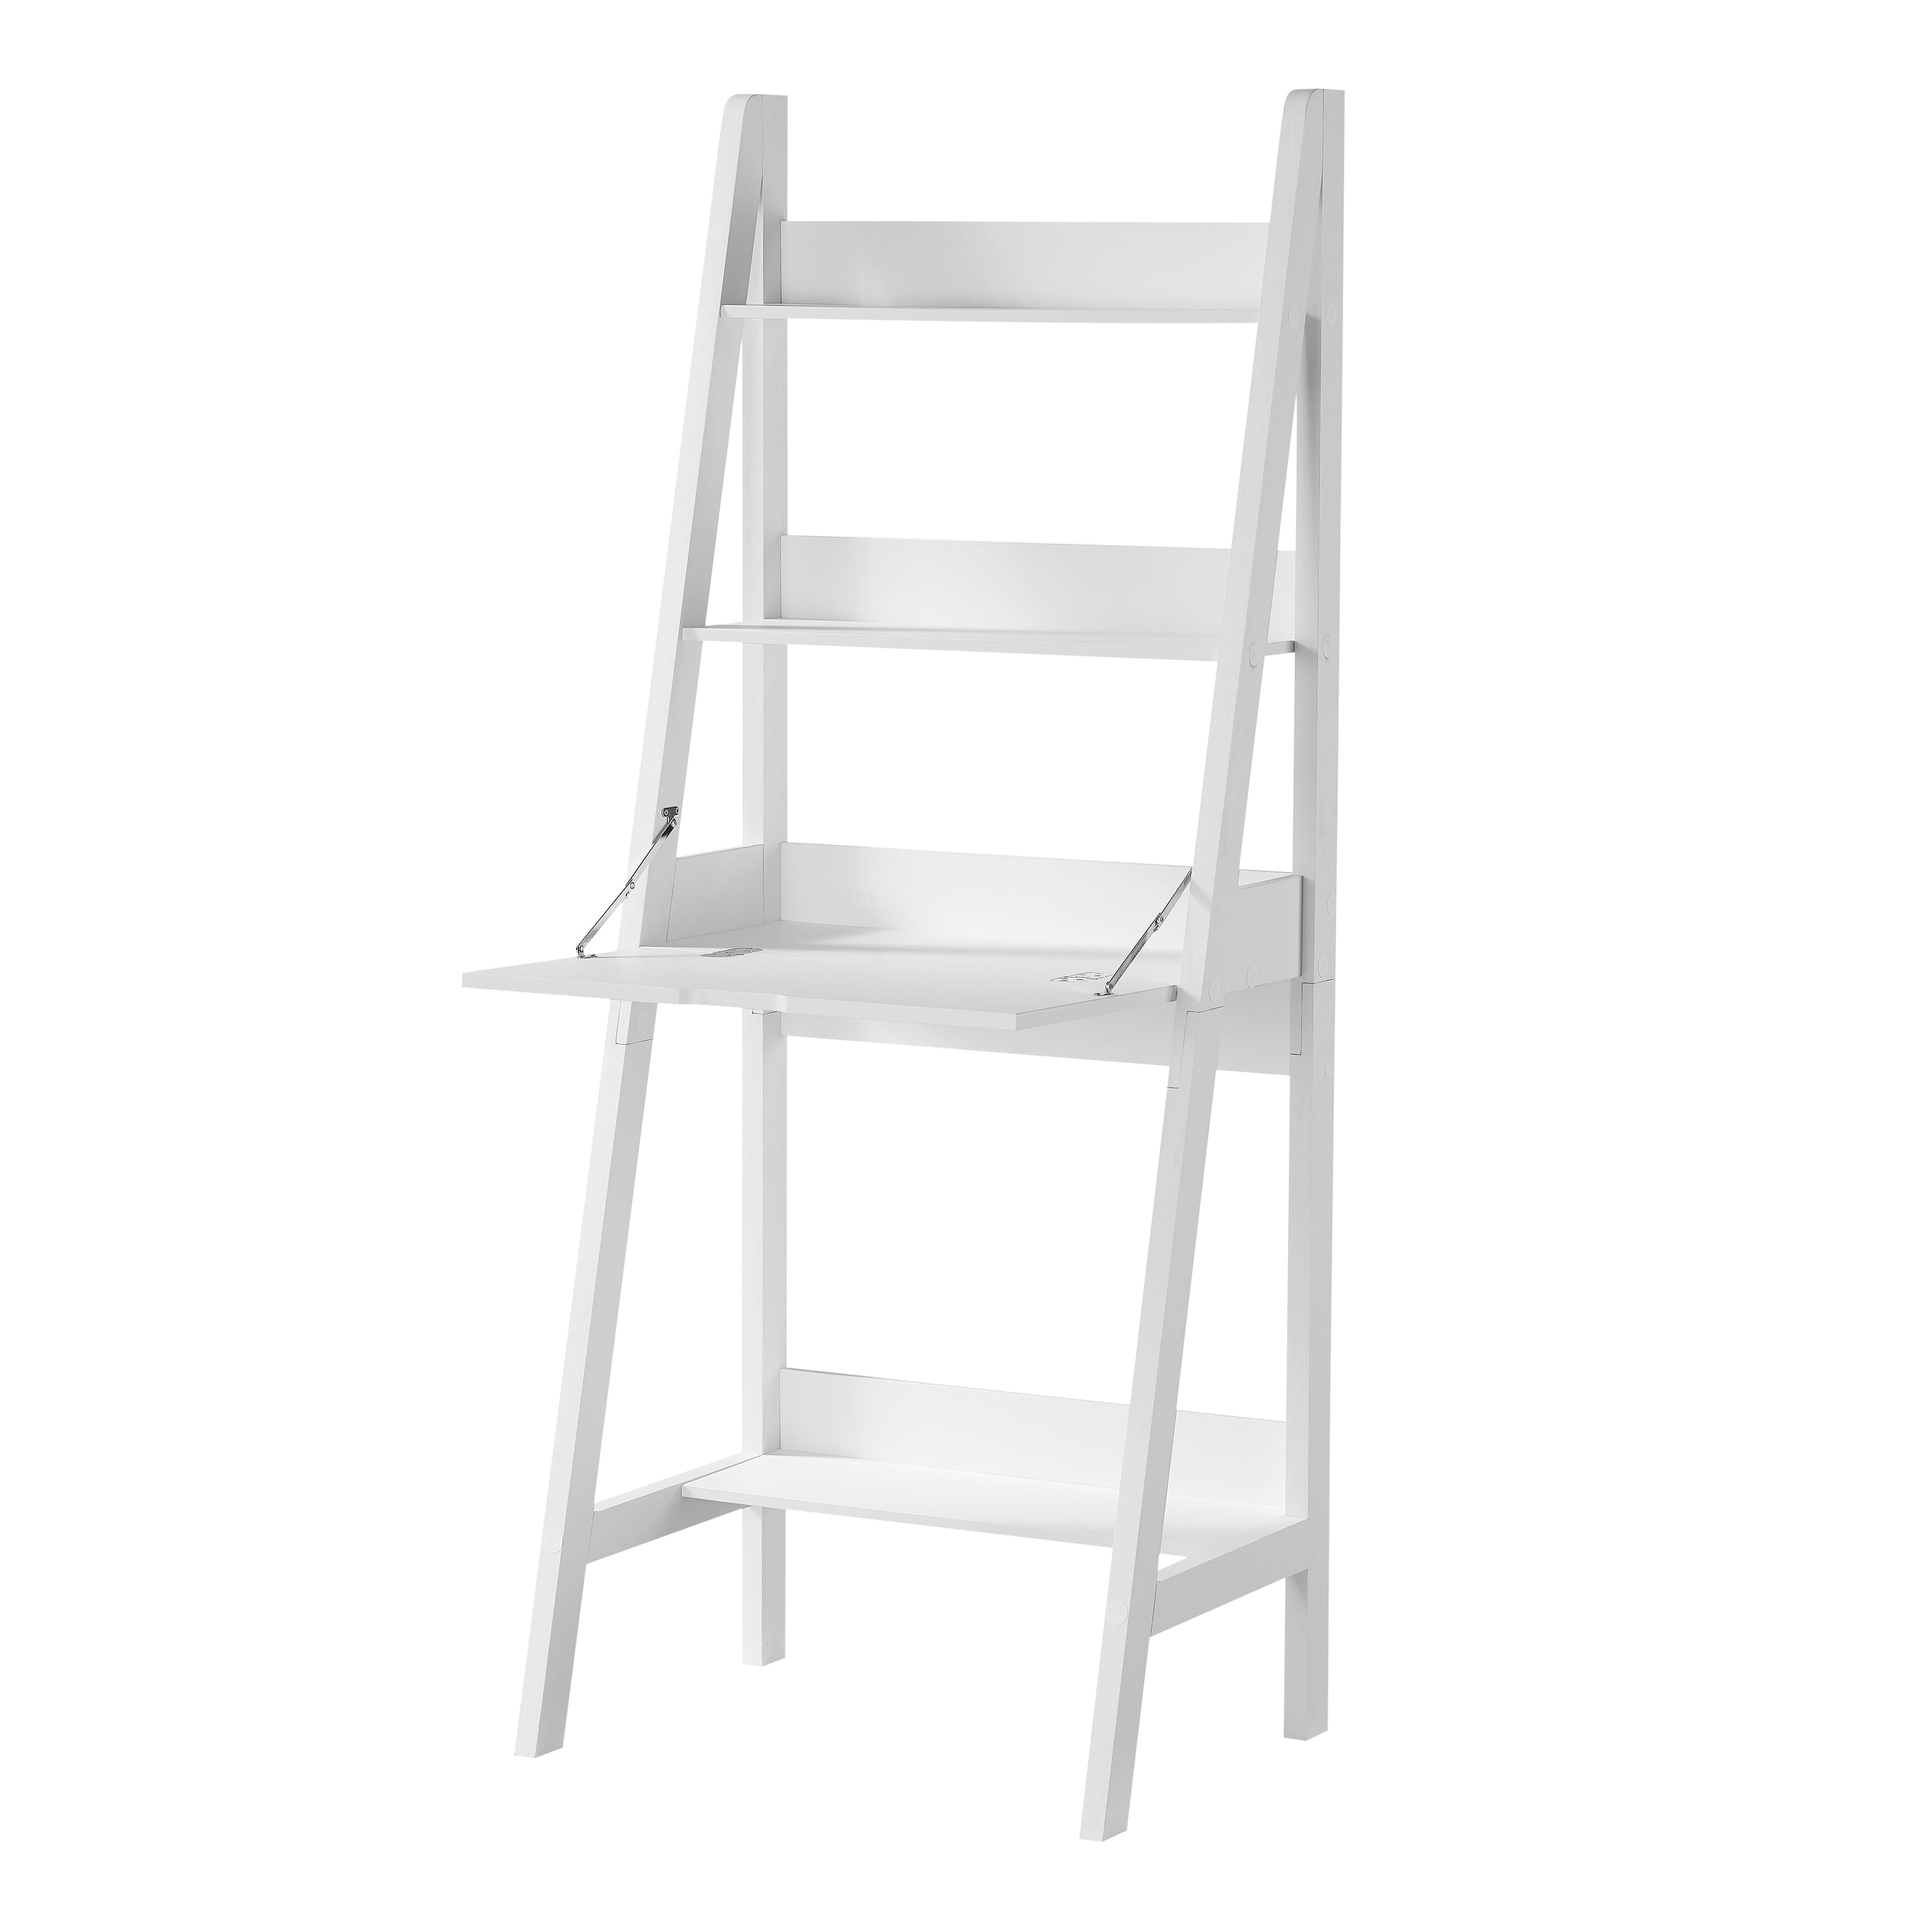 Mainstays Contemporary 3 Shelf Ladder Desk White Finish Walmart Com Walmart Com